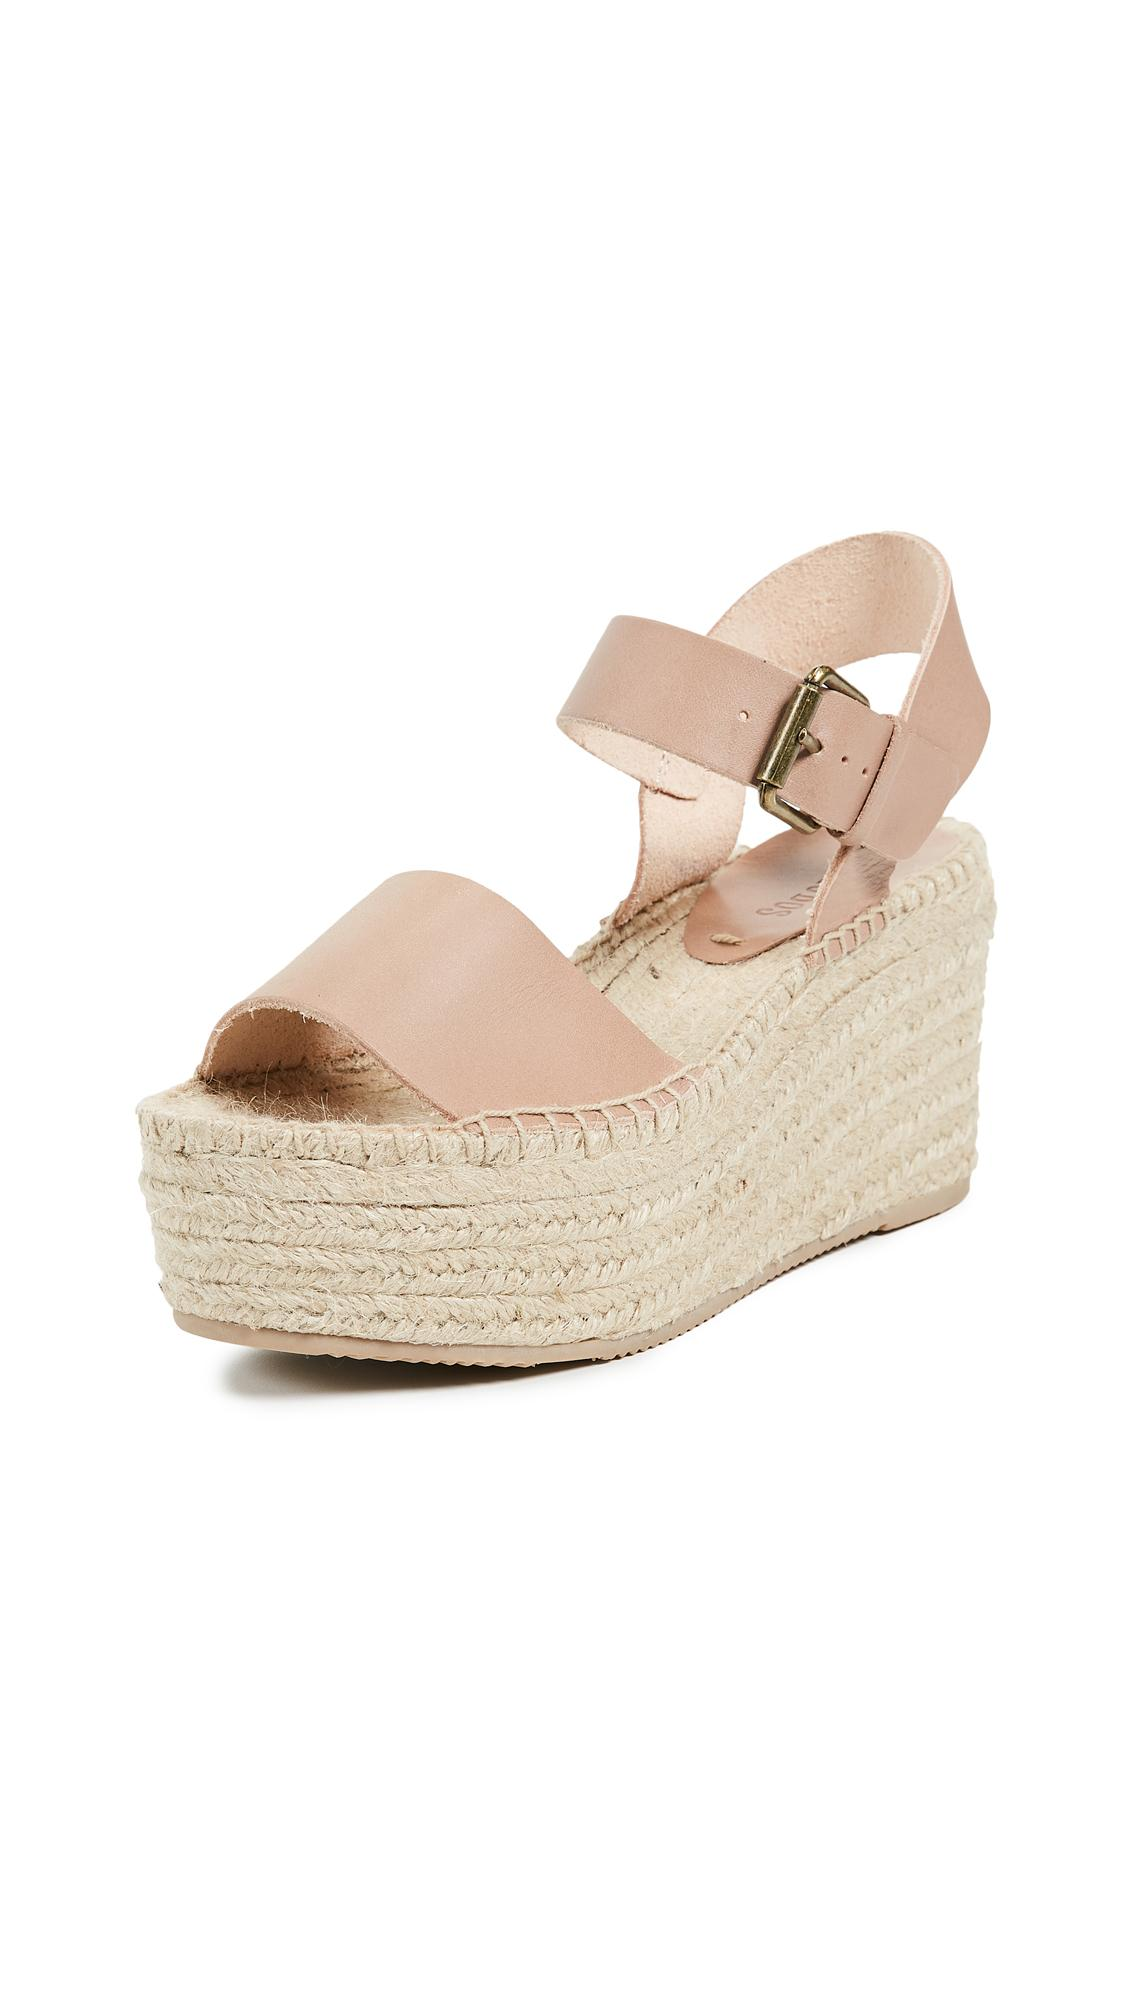 ffbd735c7752 Fabric  Braided jute Leather  Cowhide Espadrilles Wedge heel Platform  profile Buckle at ankle Open toe Rubber sole Imported